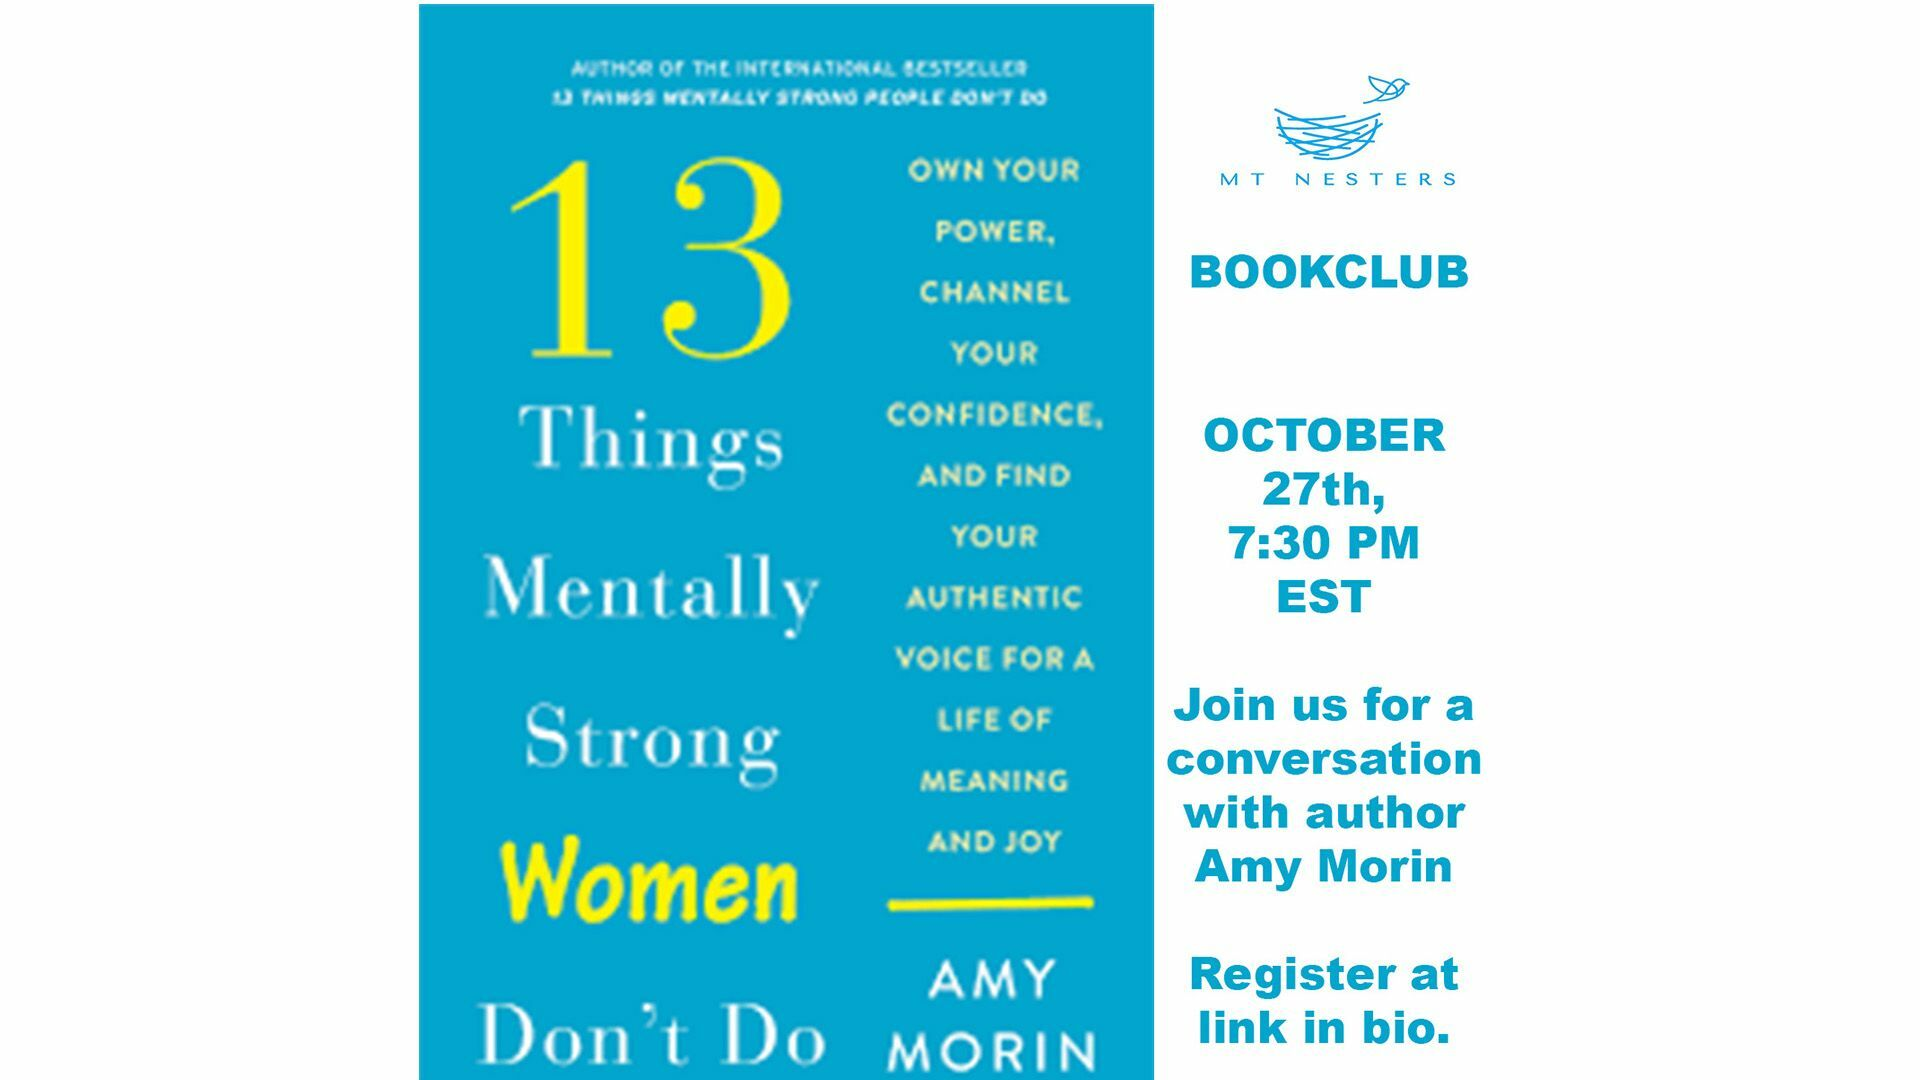 MT Nesters Book Club with Amy Morin -- Online